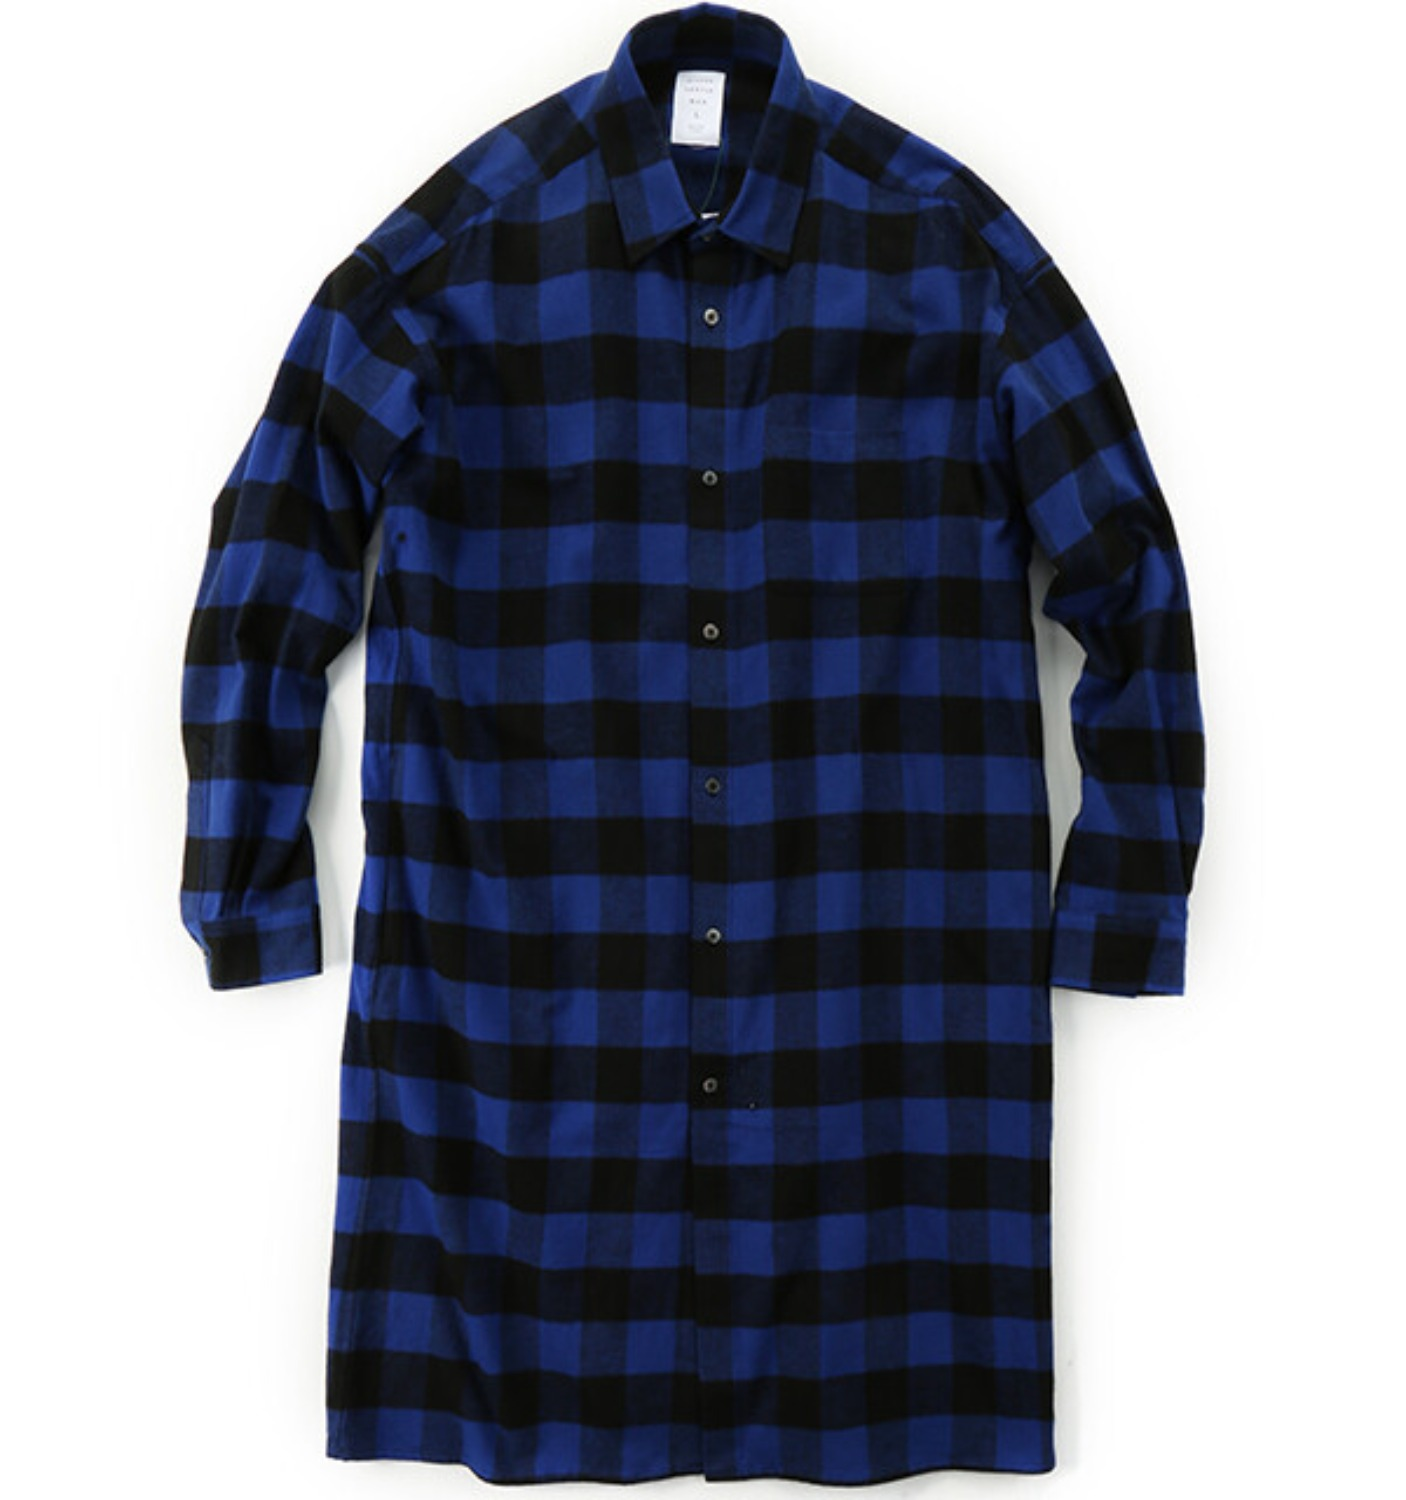 BUFFALO CHECK LONG SHIRT BLUE CHECK